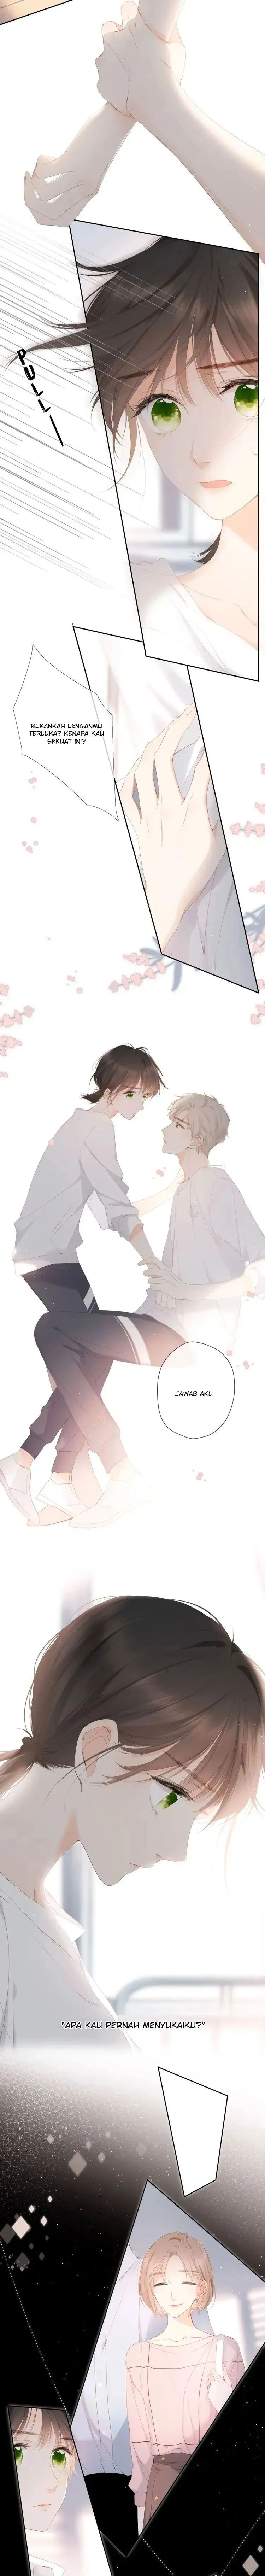 Once More Chapter 22